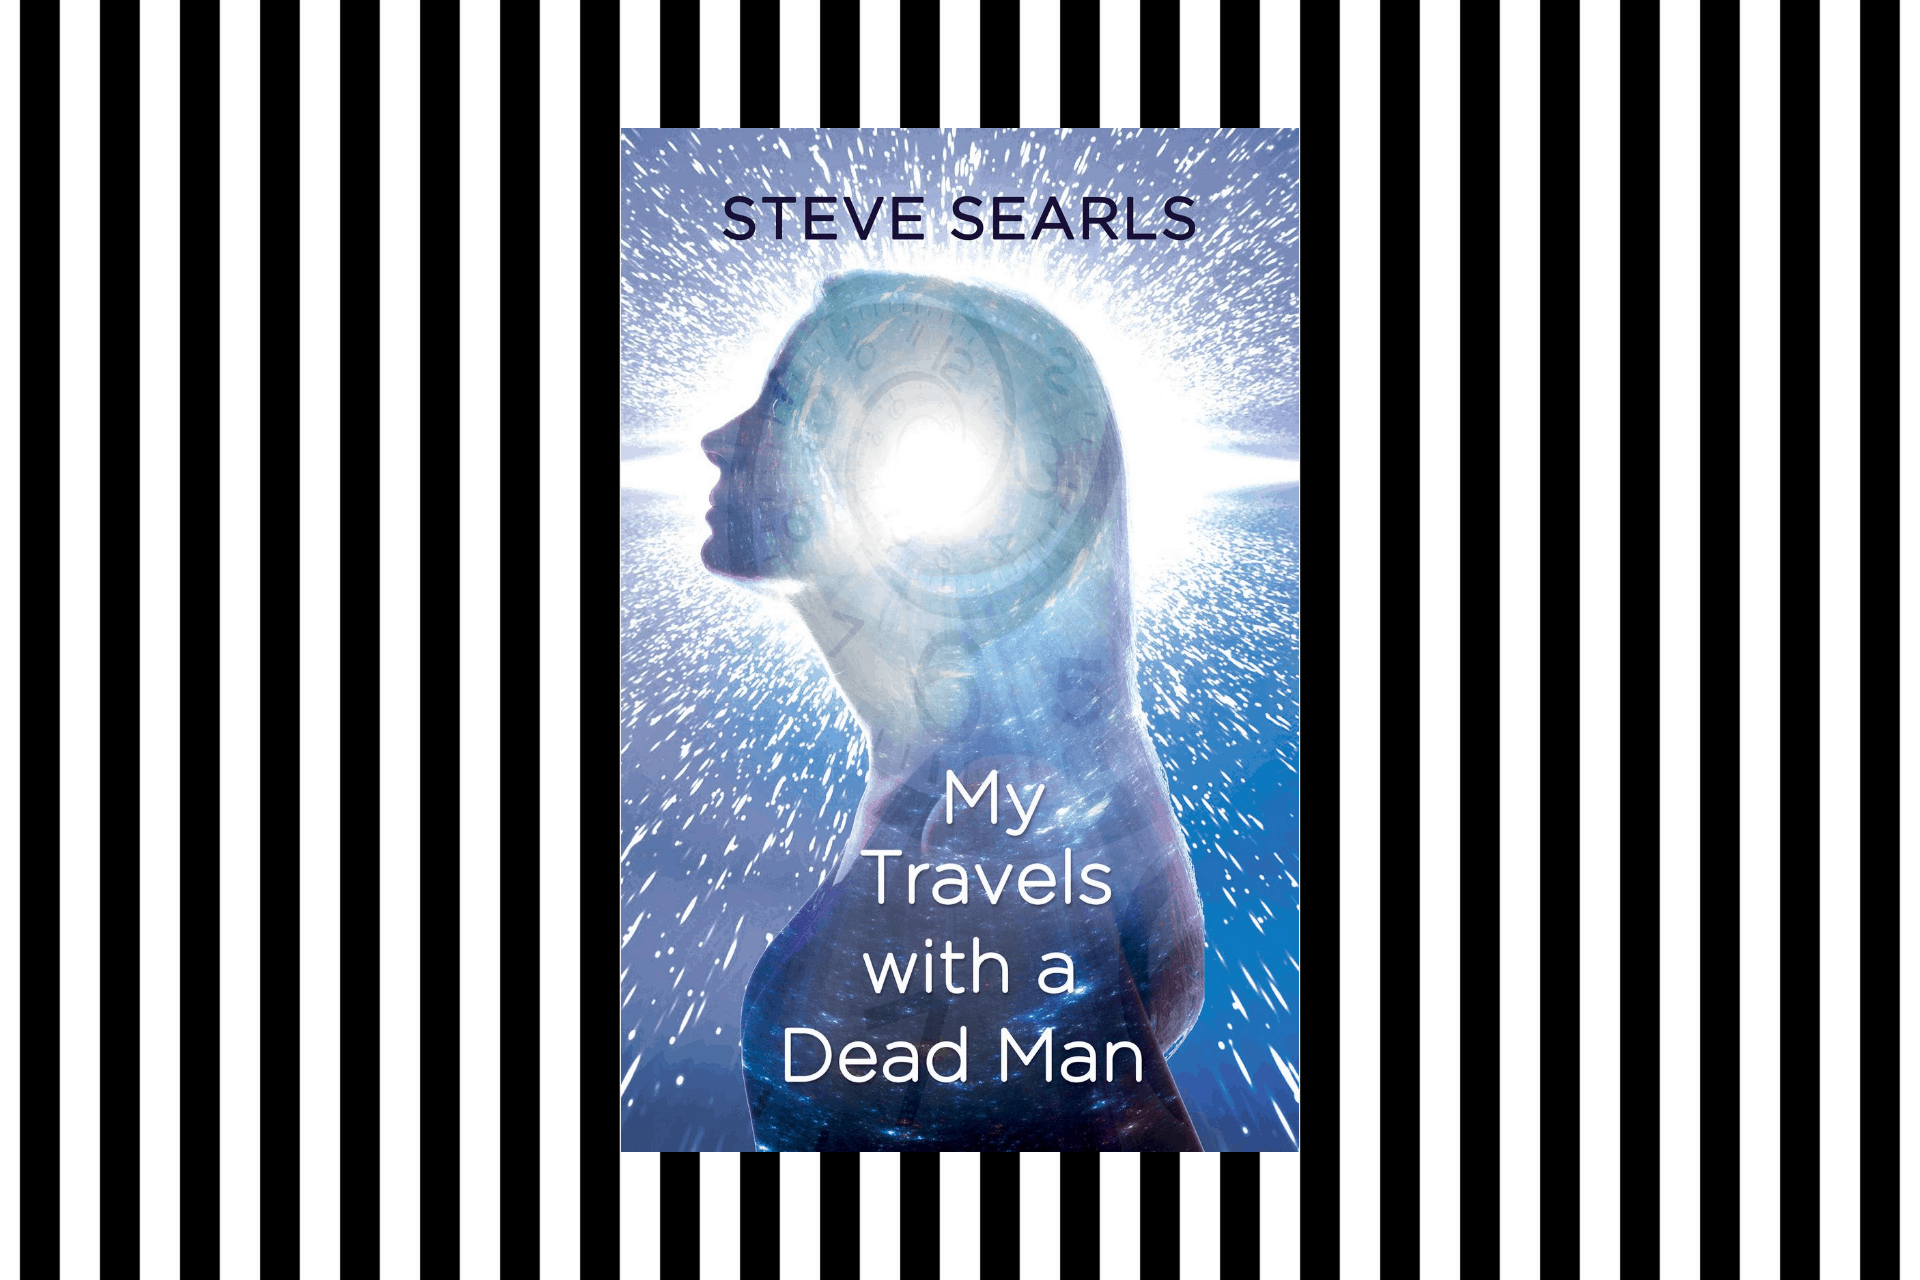 The cover of My Travels with a Dead Man by Steve Searls